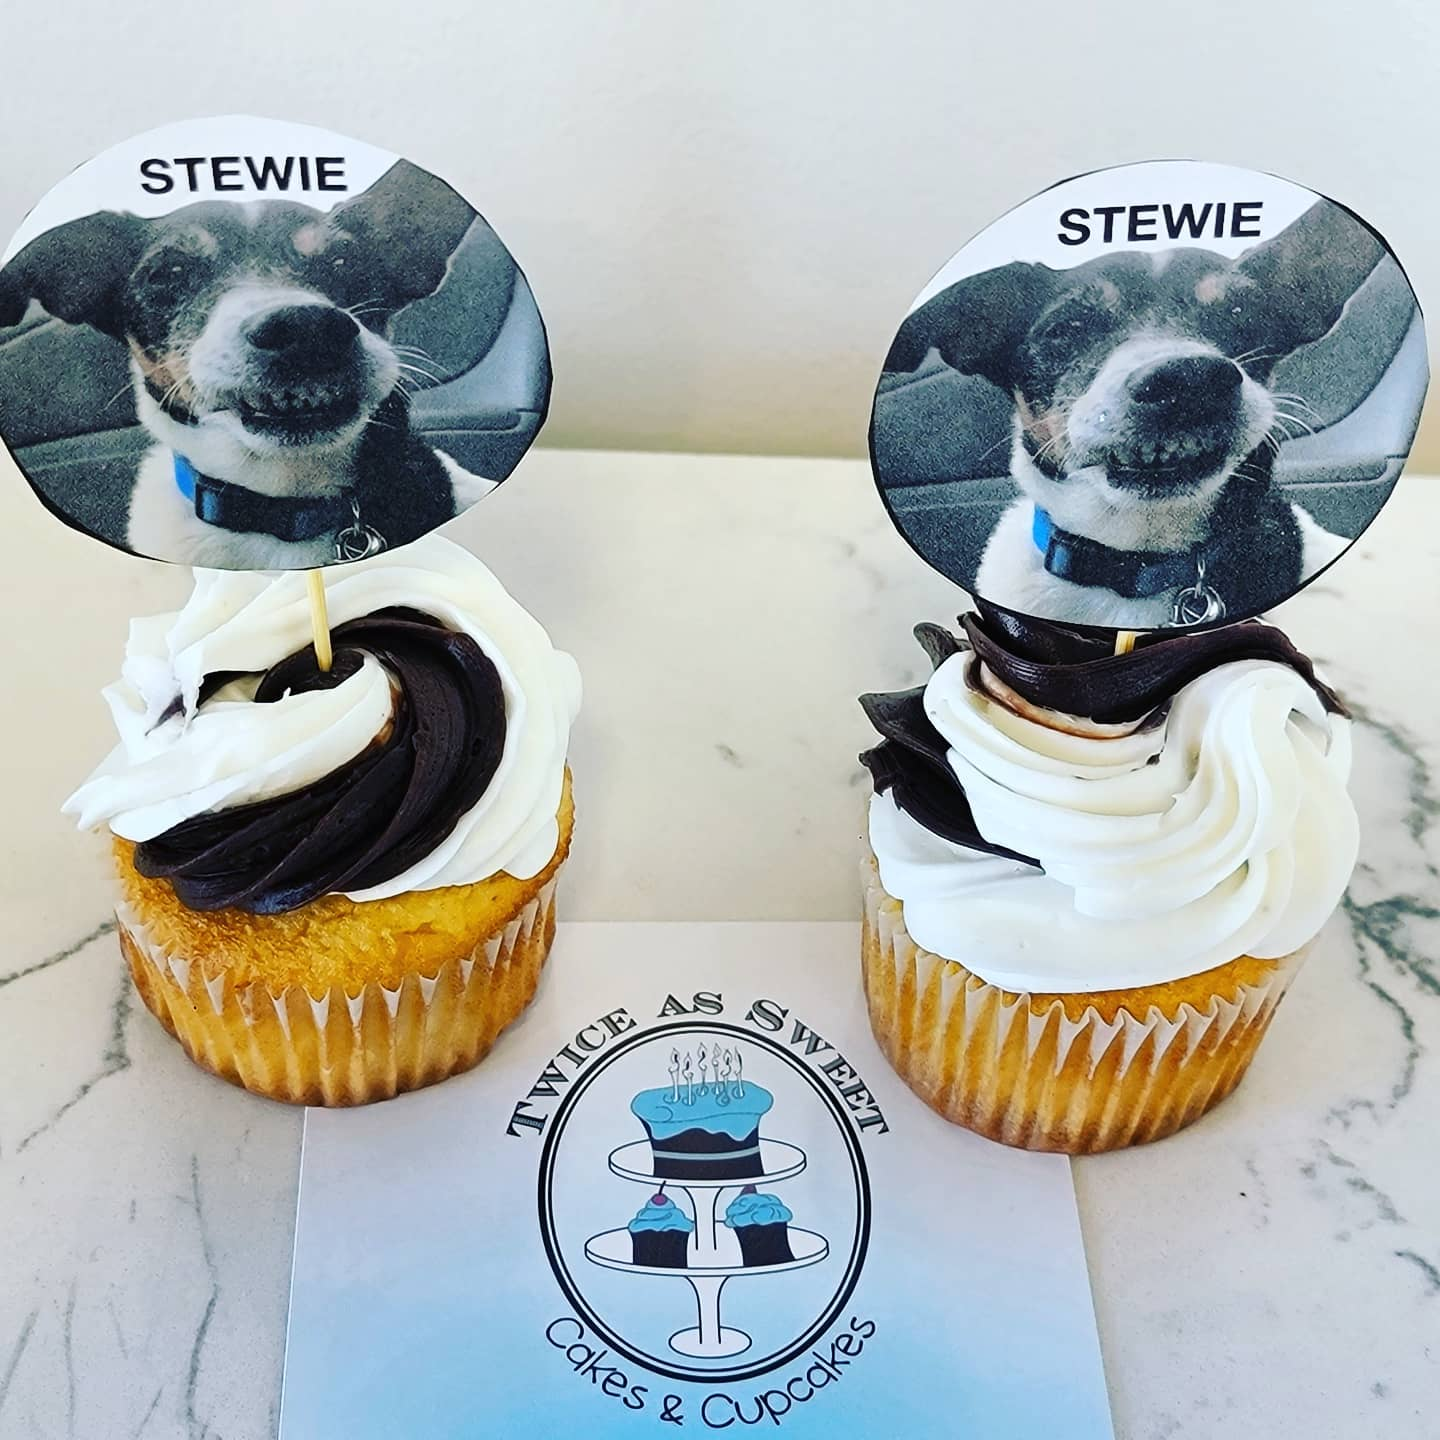 Stewie Dog Cupcakes at Twice As Sweet